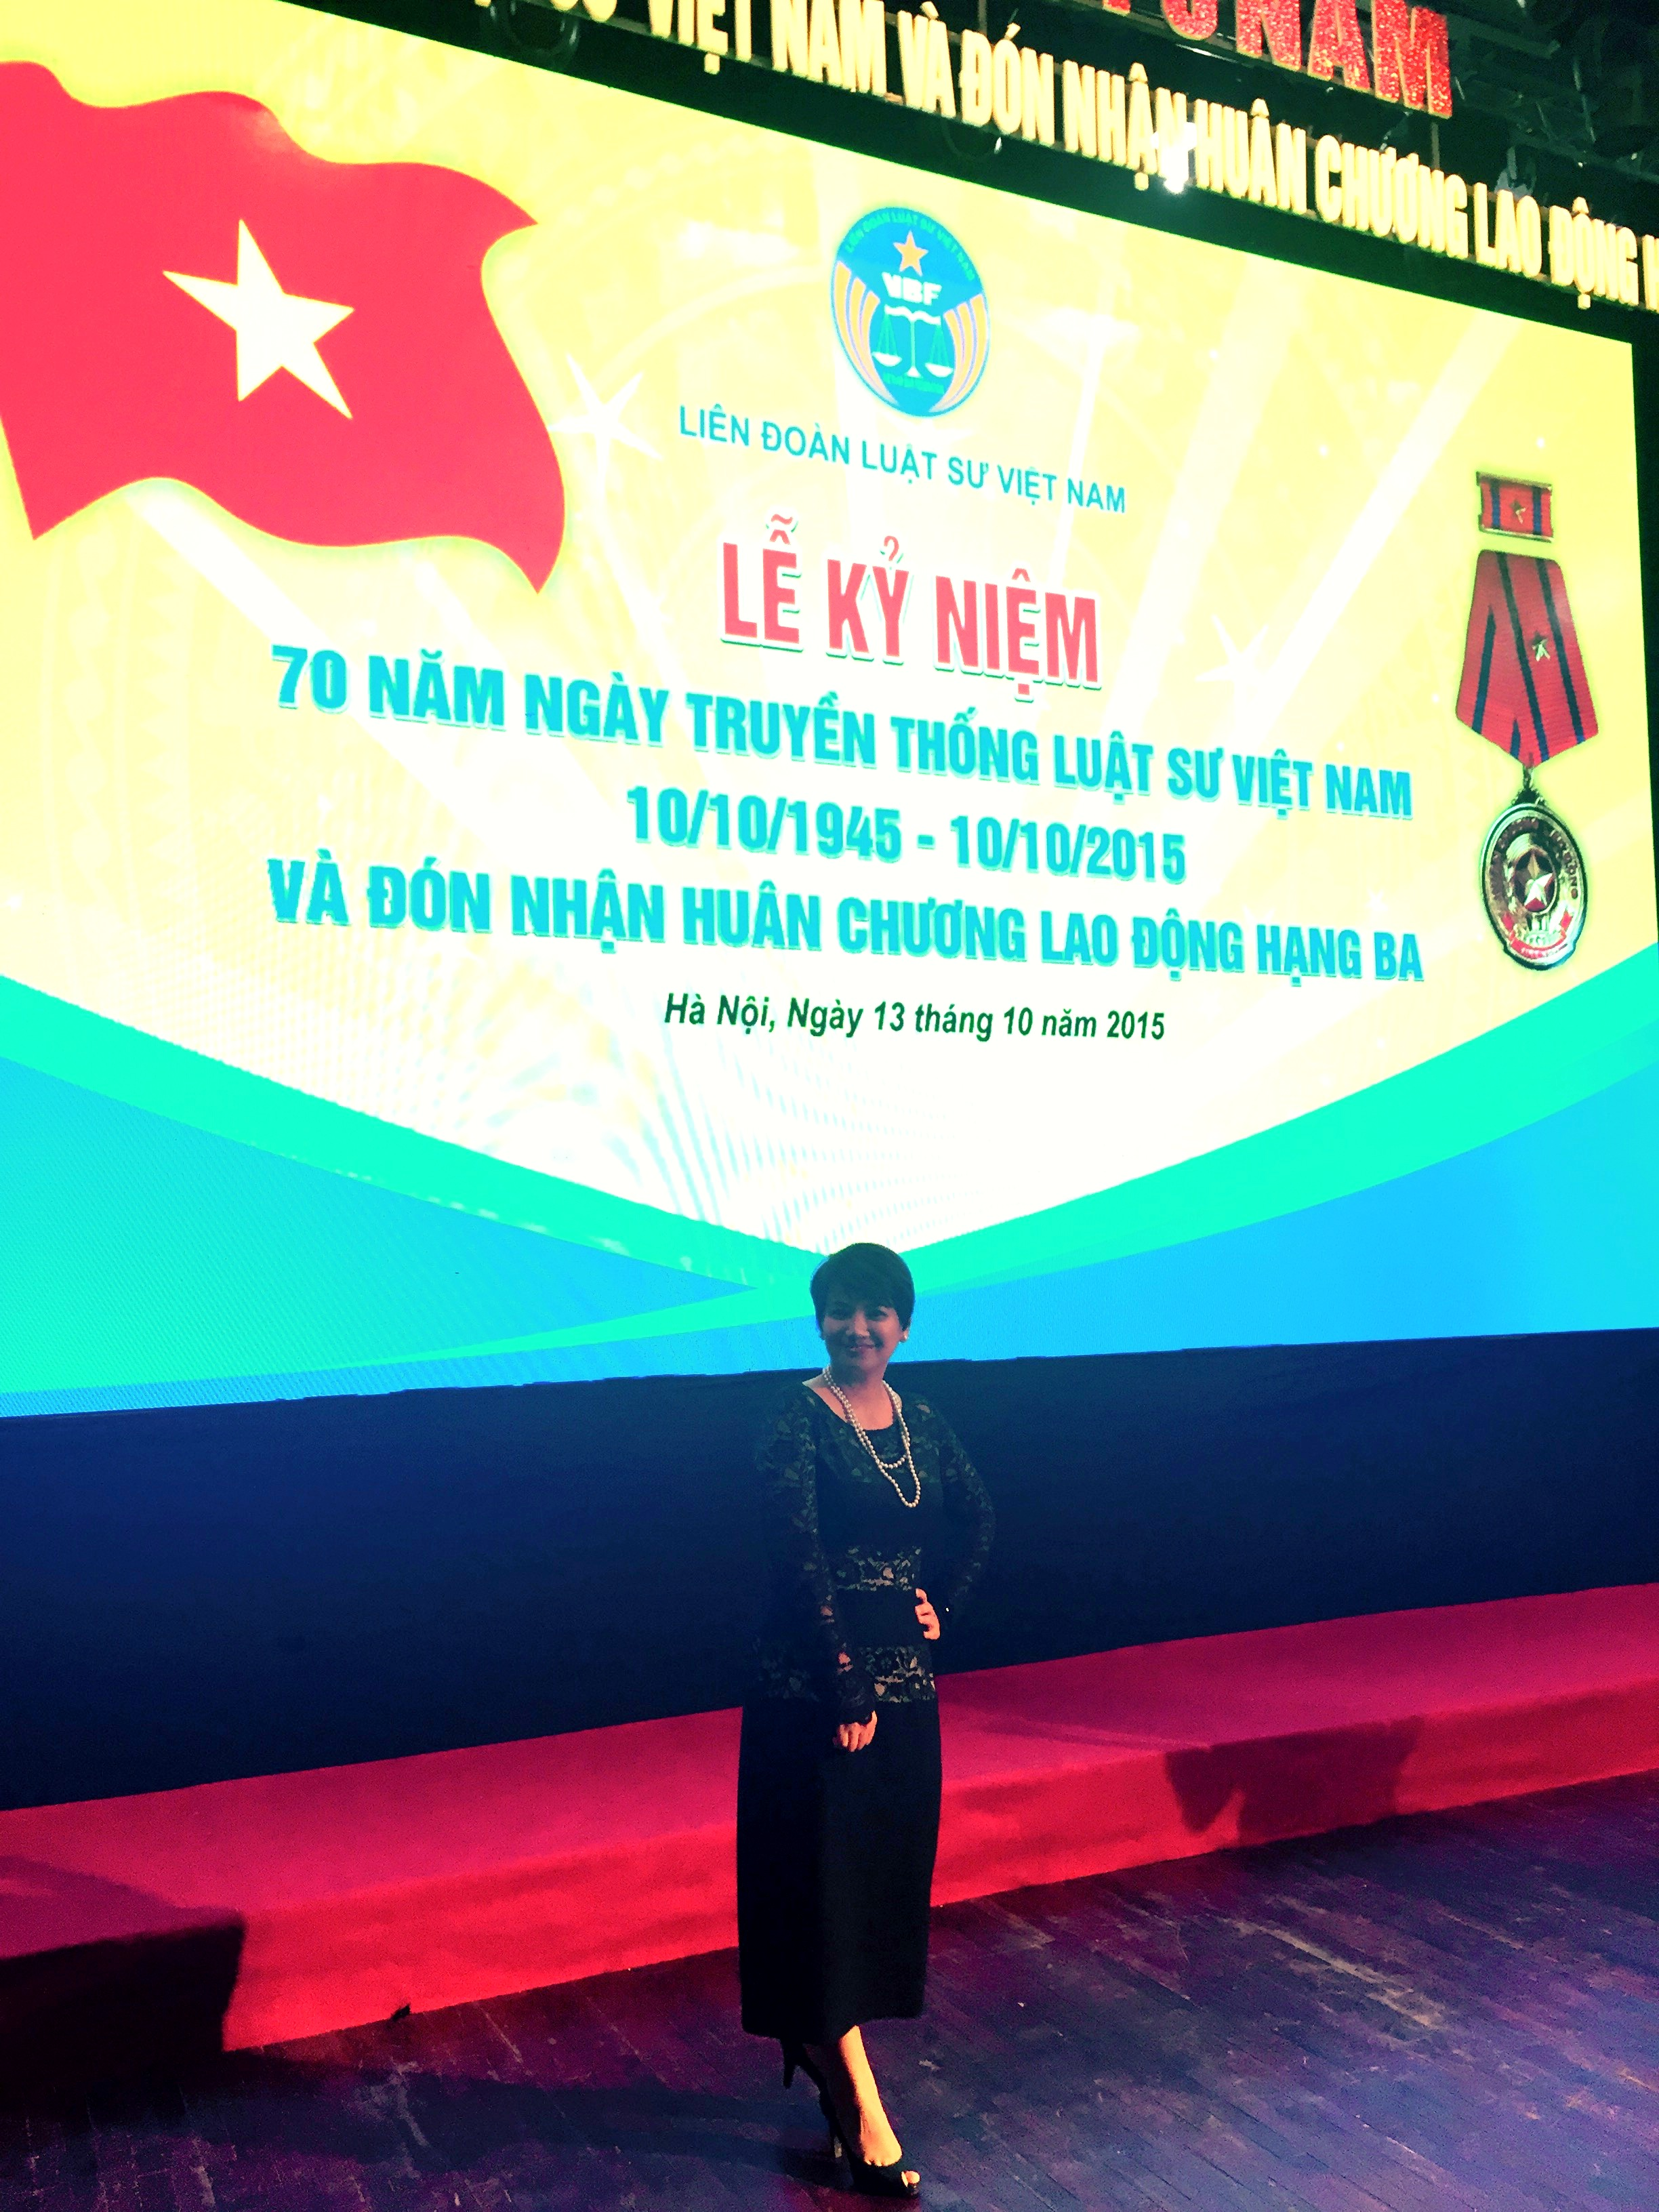 Ms. Vu Thi Thu Ha participated in the 70th Anniversary of Vietnamese Lawyers' Traditional Day